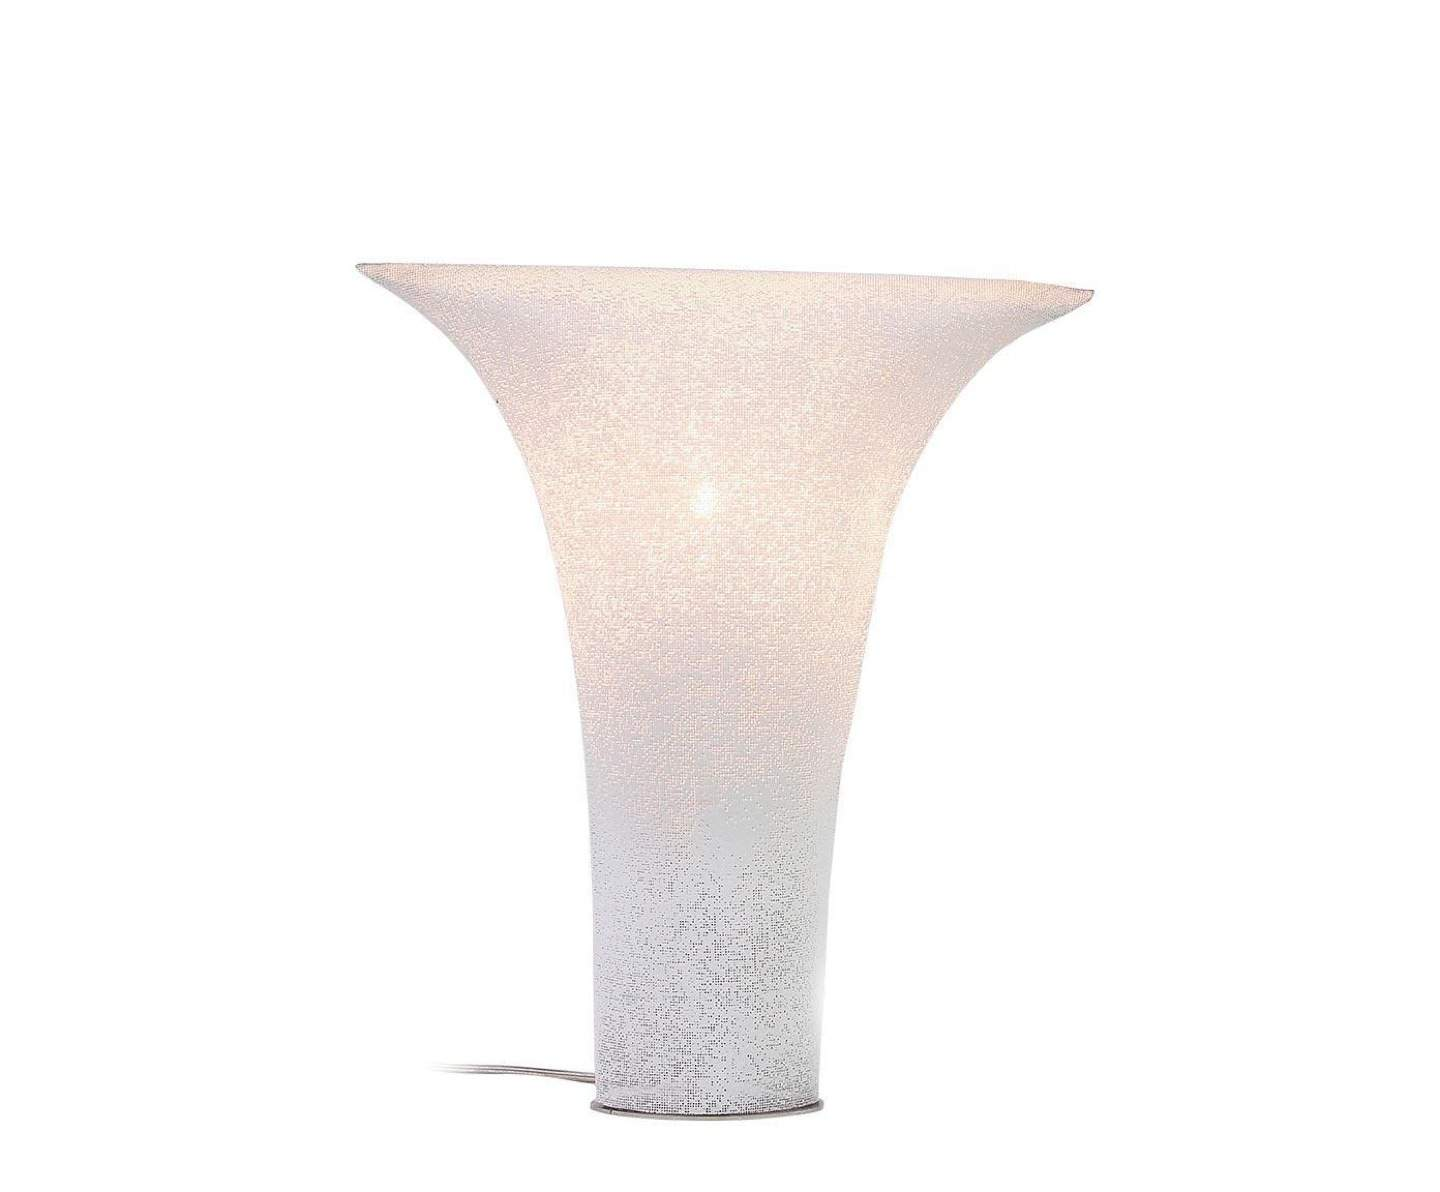 Muu Table Lamp Small